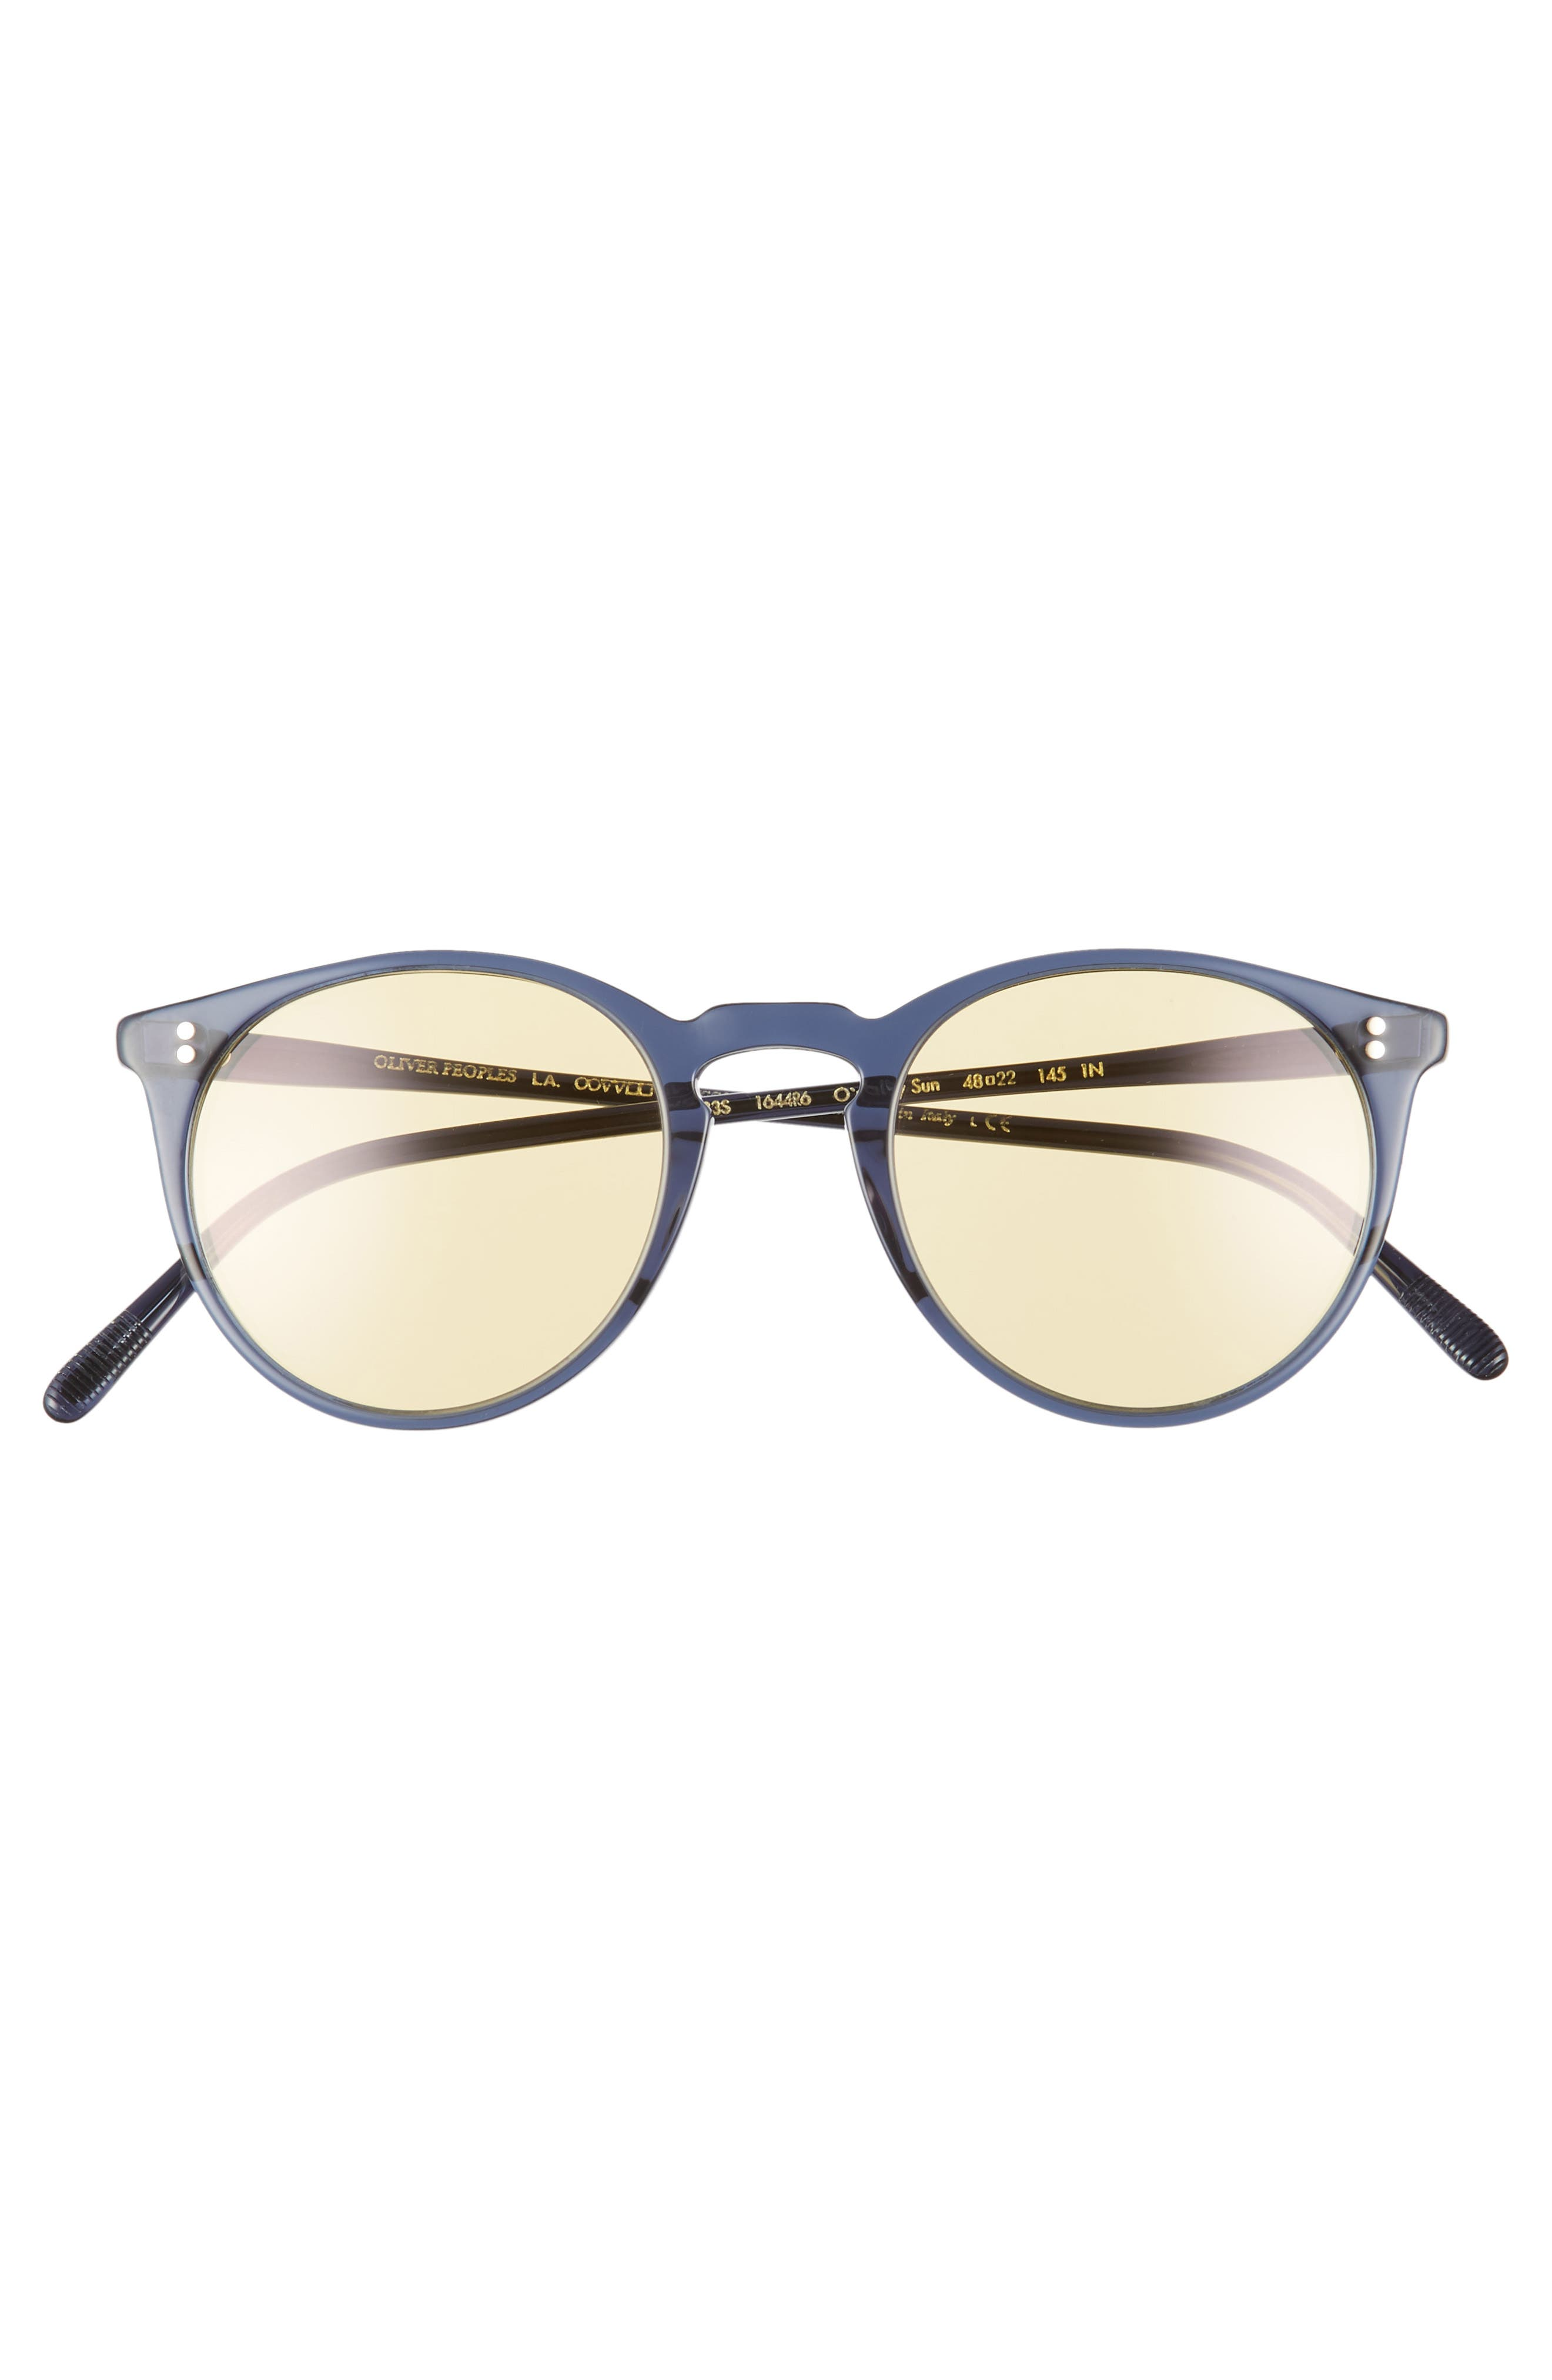 O'Malley 48mm Round Sunglasses,                             Alternate thumbnail 3, color,                             NAVY